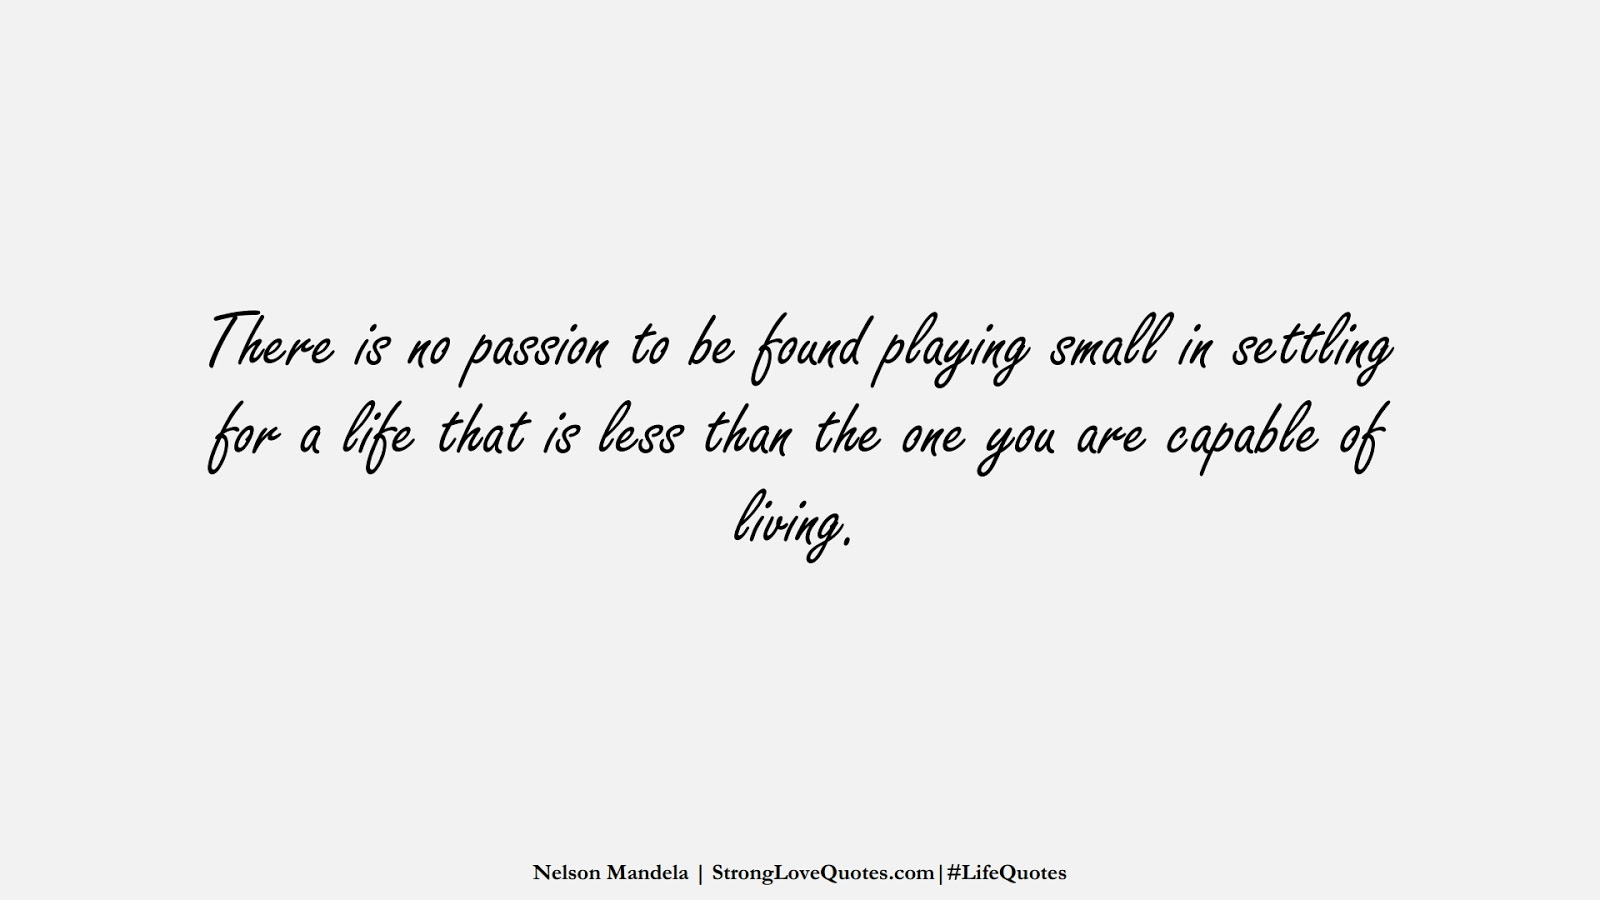 There is no passion to be found playing small in settling for a life that is less than the one you are capable of living. (Nelson Mandela);  #LifeQuotes